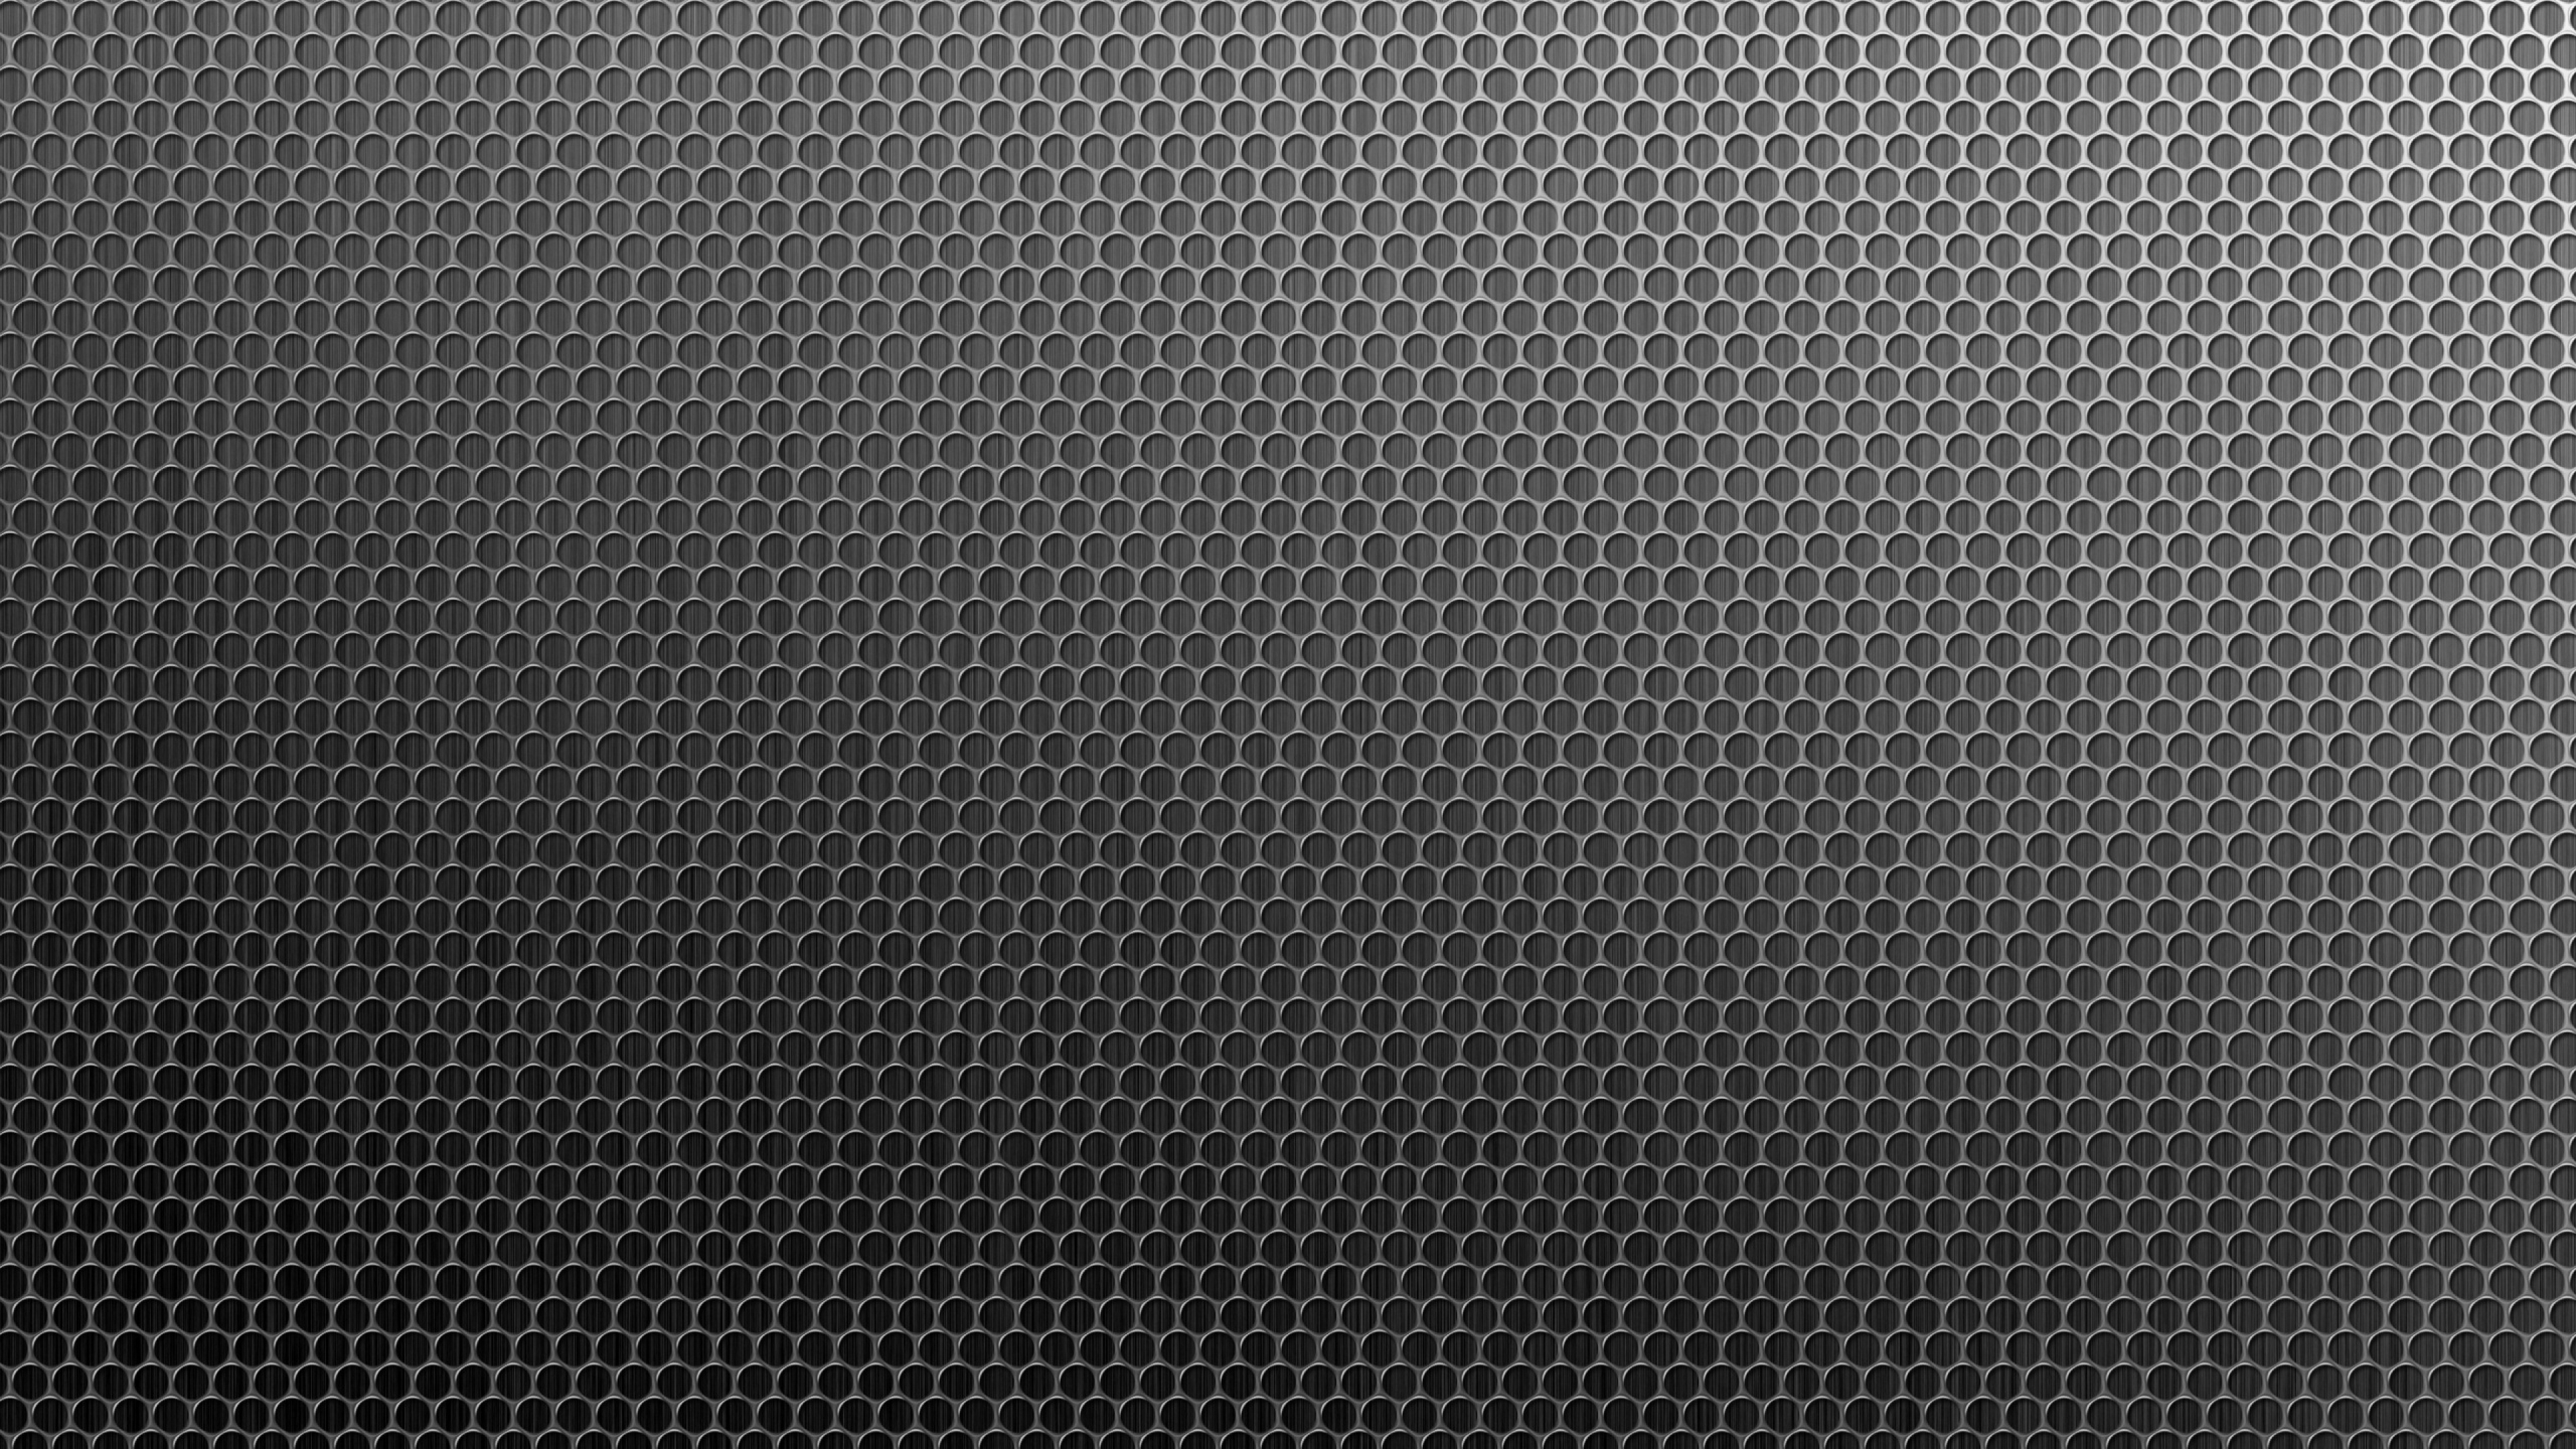 Wallpaper 3840x2160 point background texture surface metal 4K 3840x2160